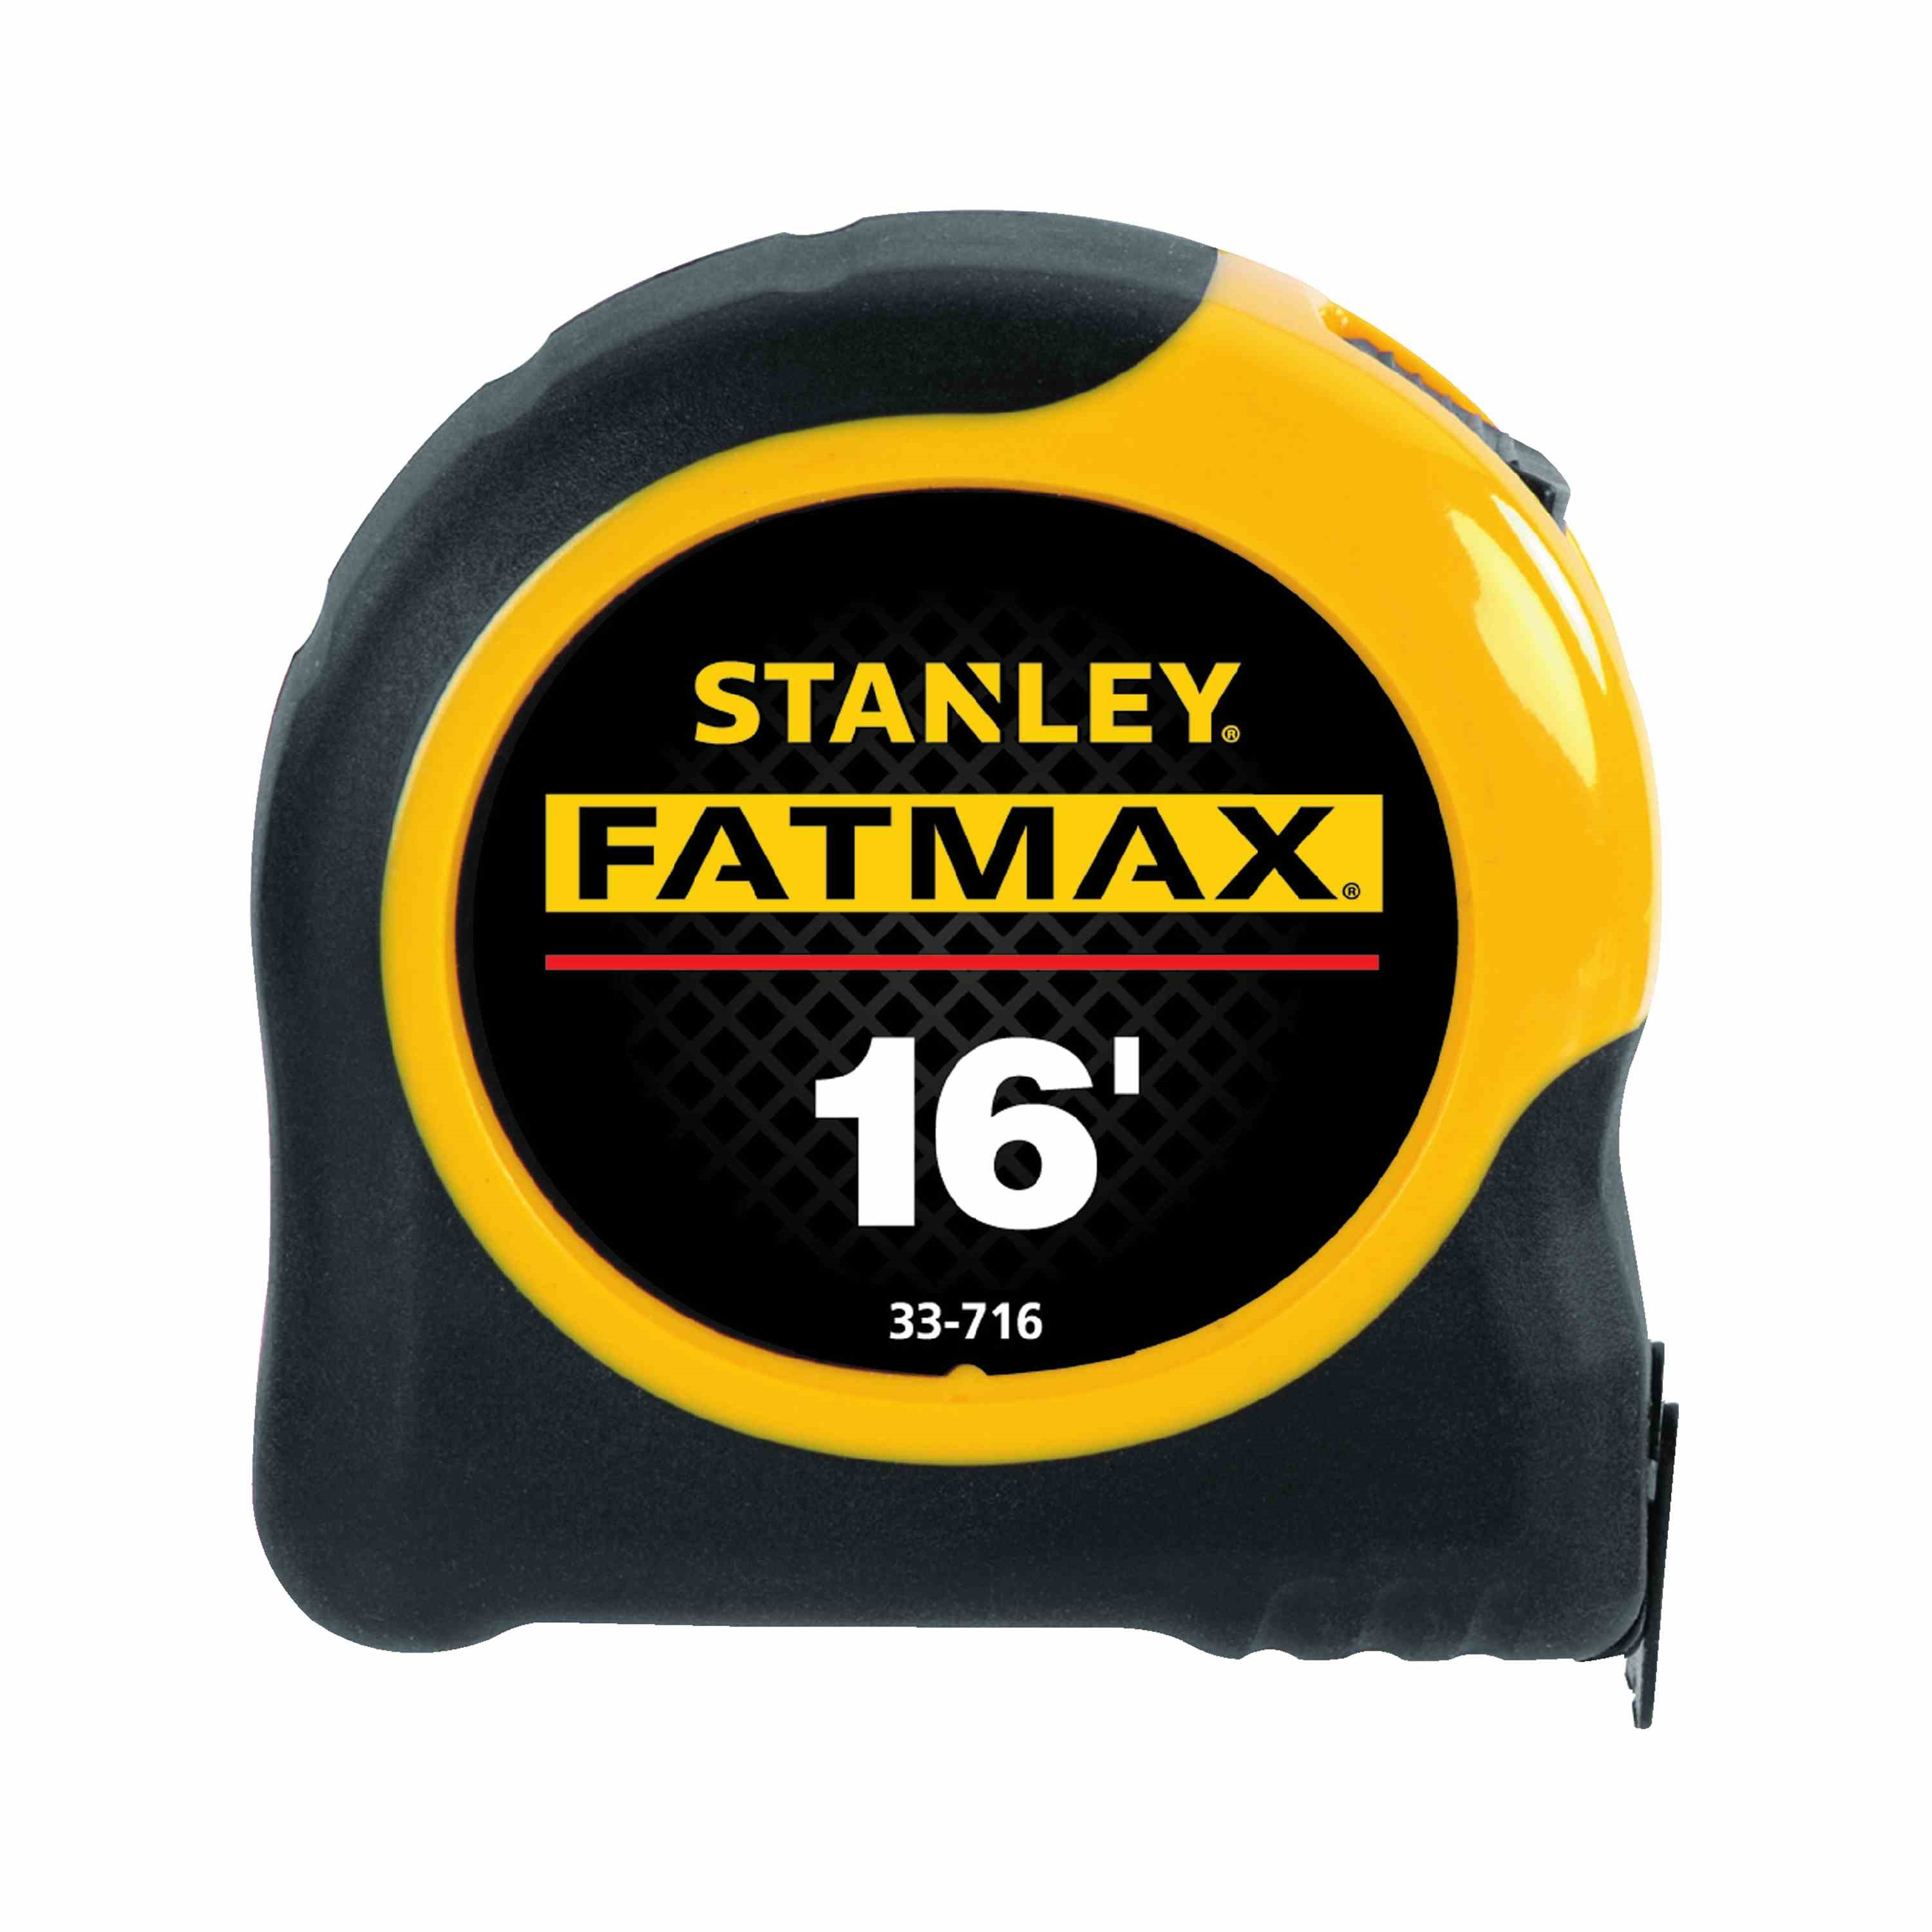 Stanley Tools - 16 ft FATMAX Classic Tape Measure - 33-716